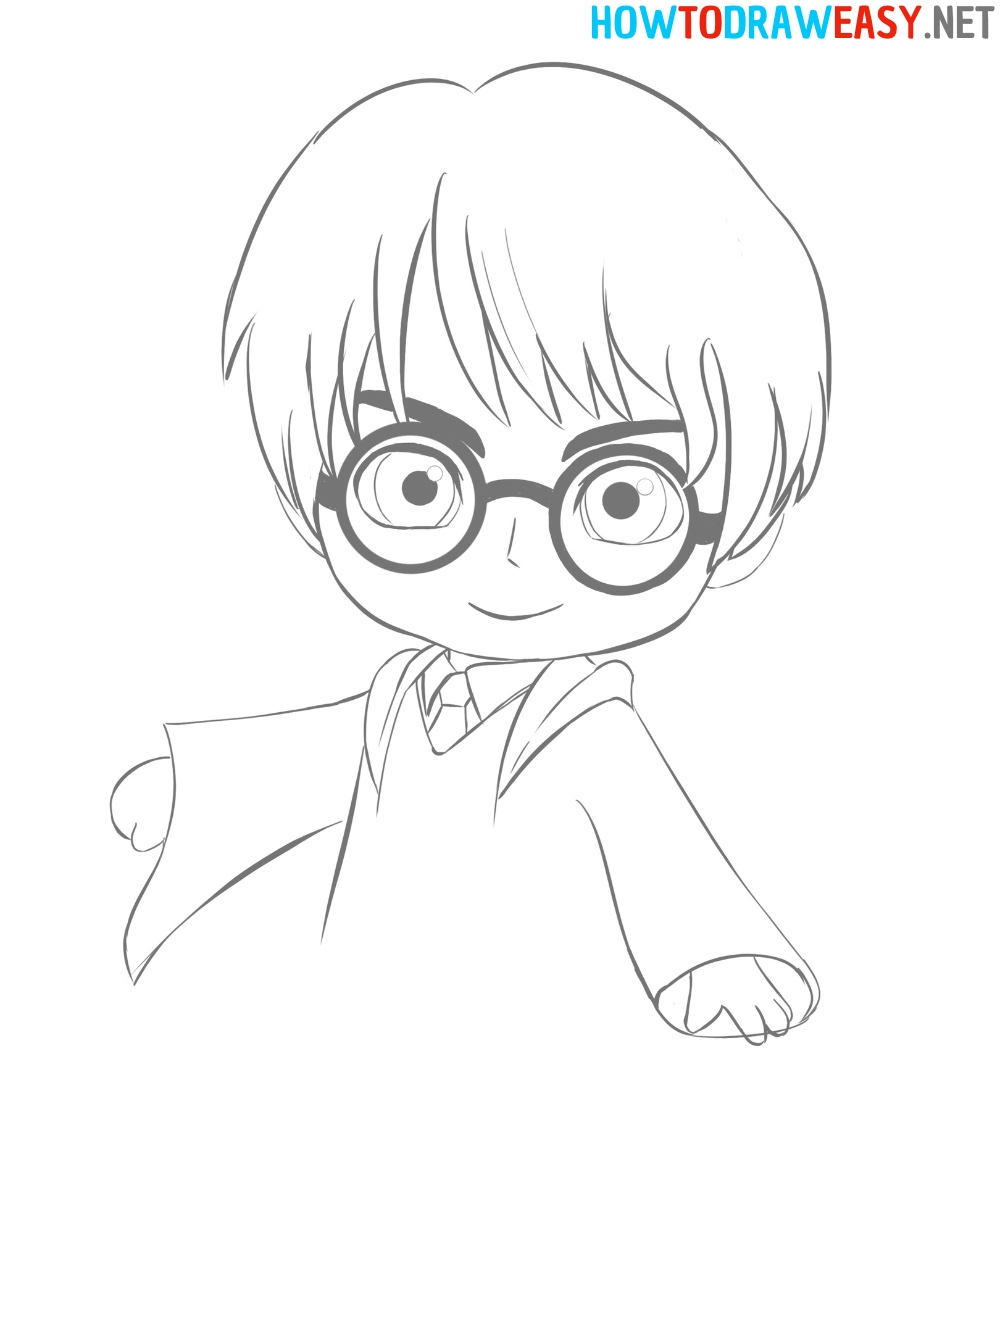 Harry Potter Drawing for beginners